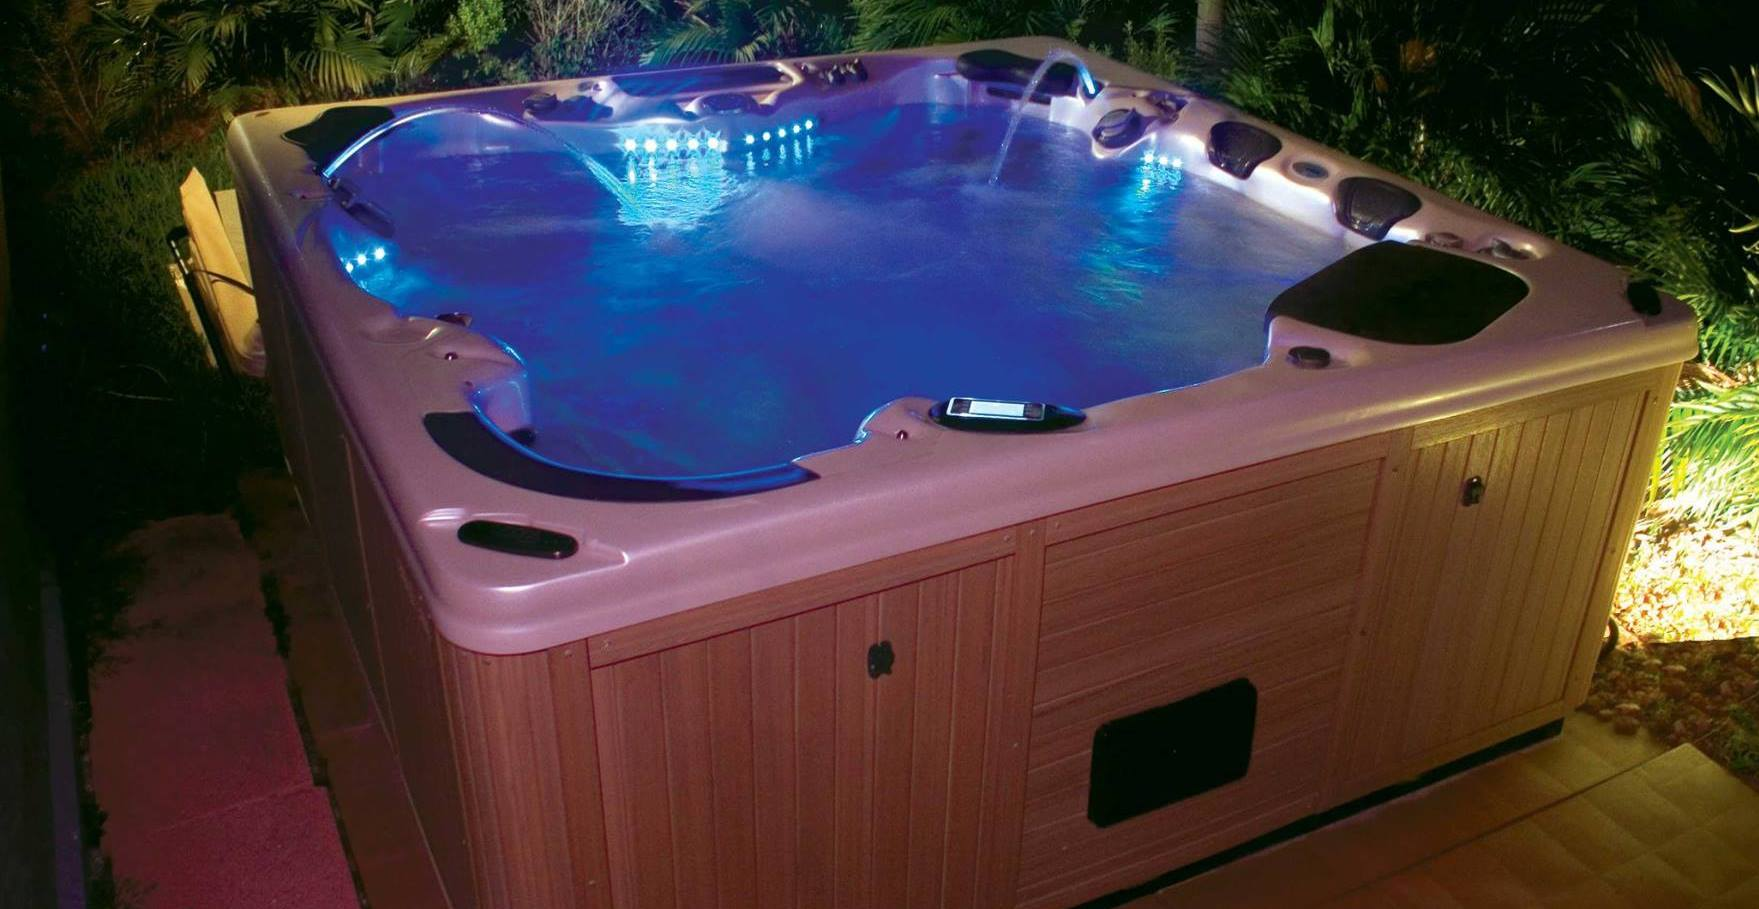 Jacuzzi Pool Filter Reviews Are Inflatable Hot Tubs Better Than Regular Hot Tubs